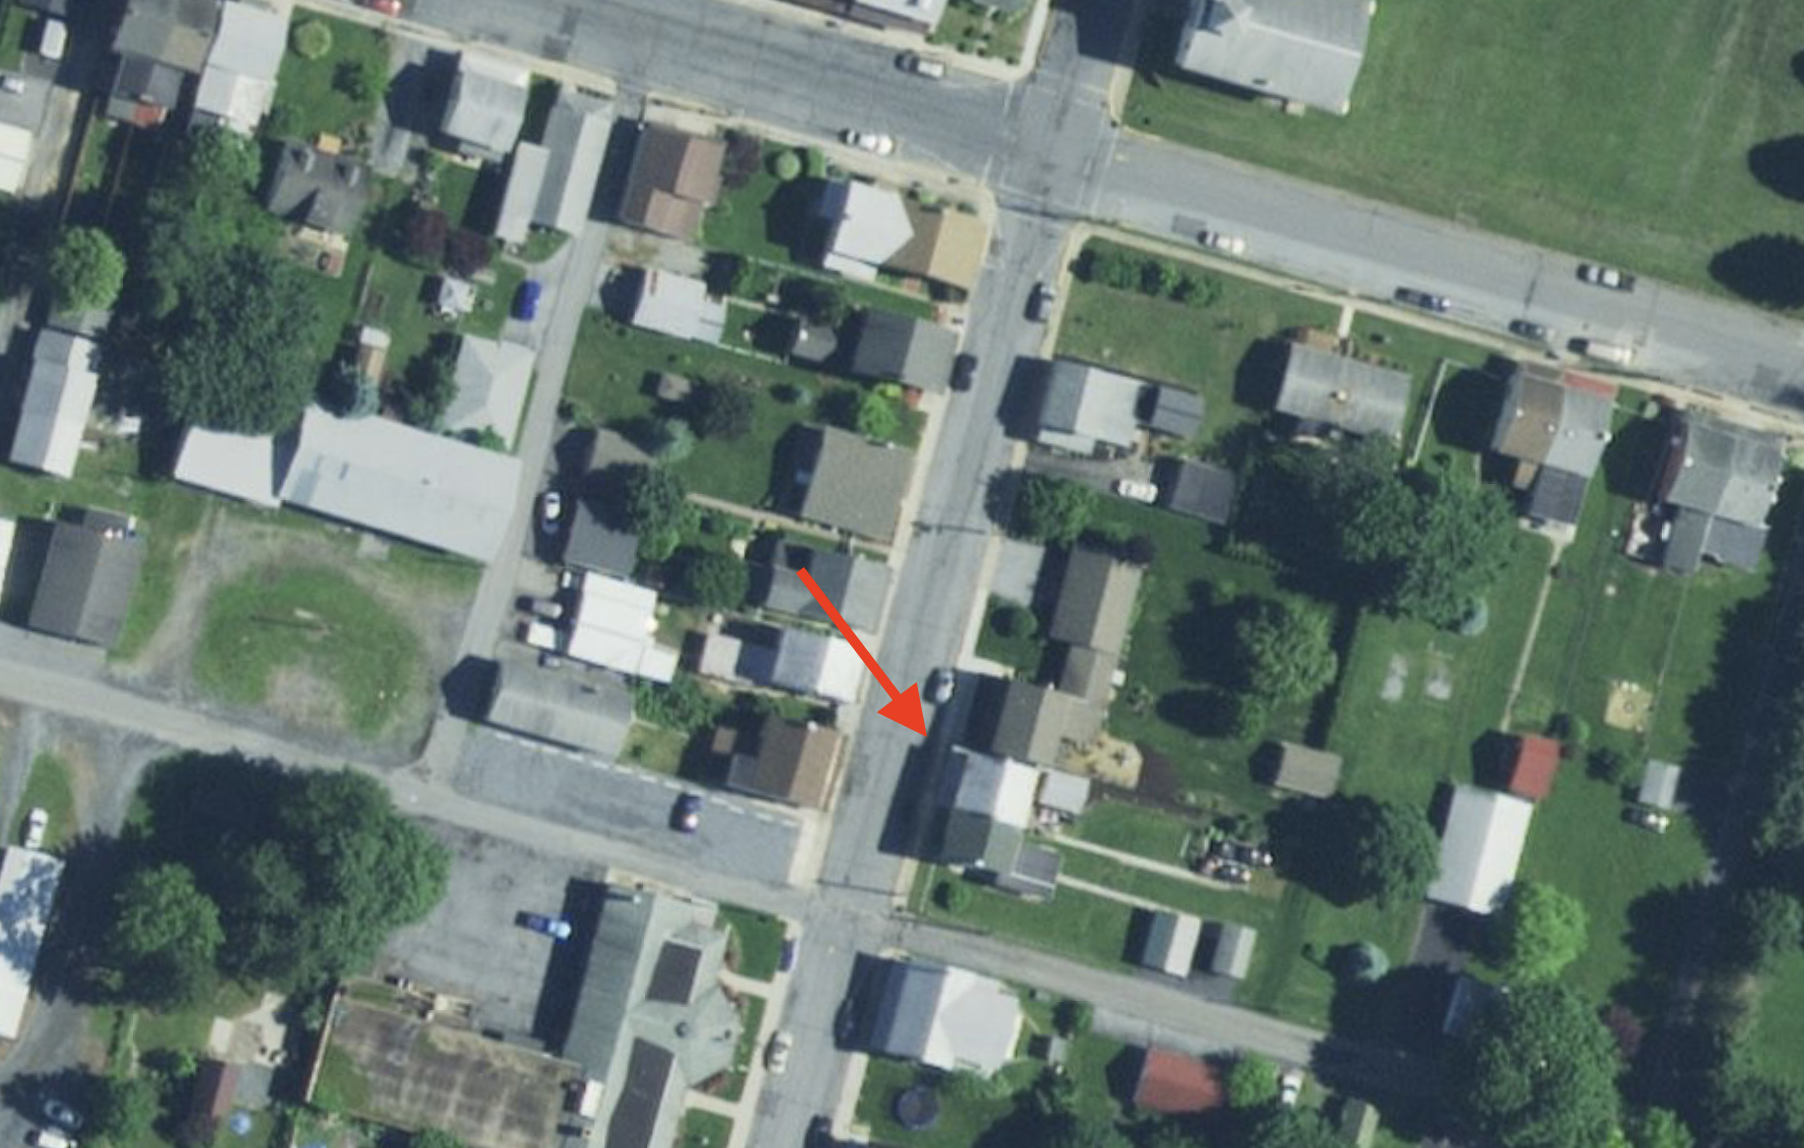 Satellite photo of Womelsdorf and the approximate house where we lived from 1949 to 1952